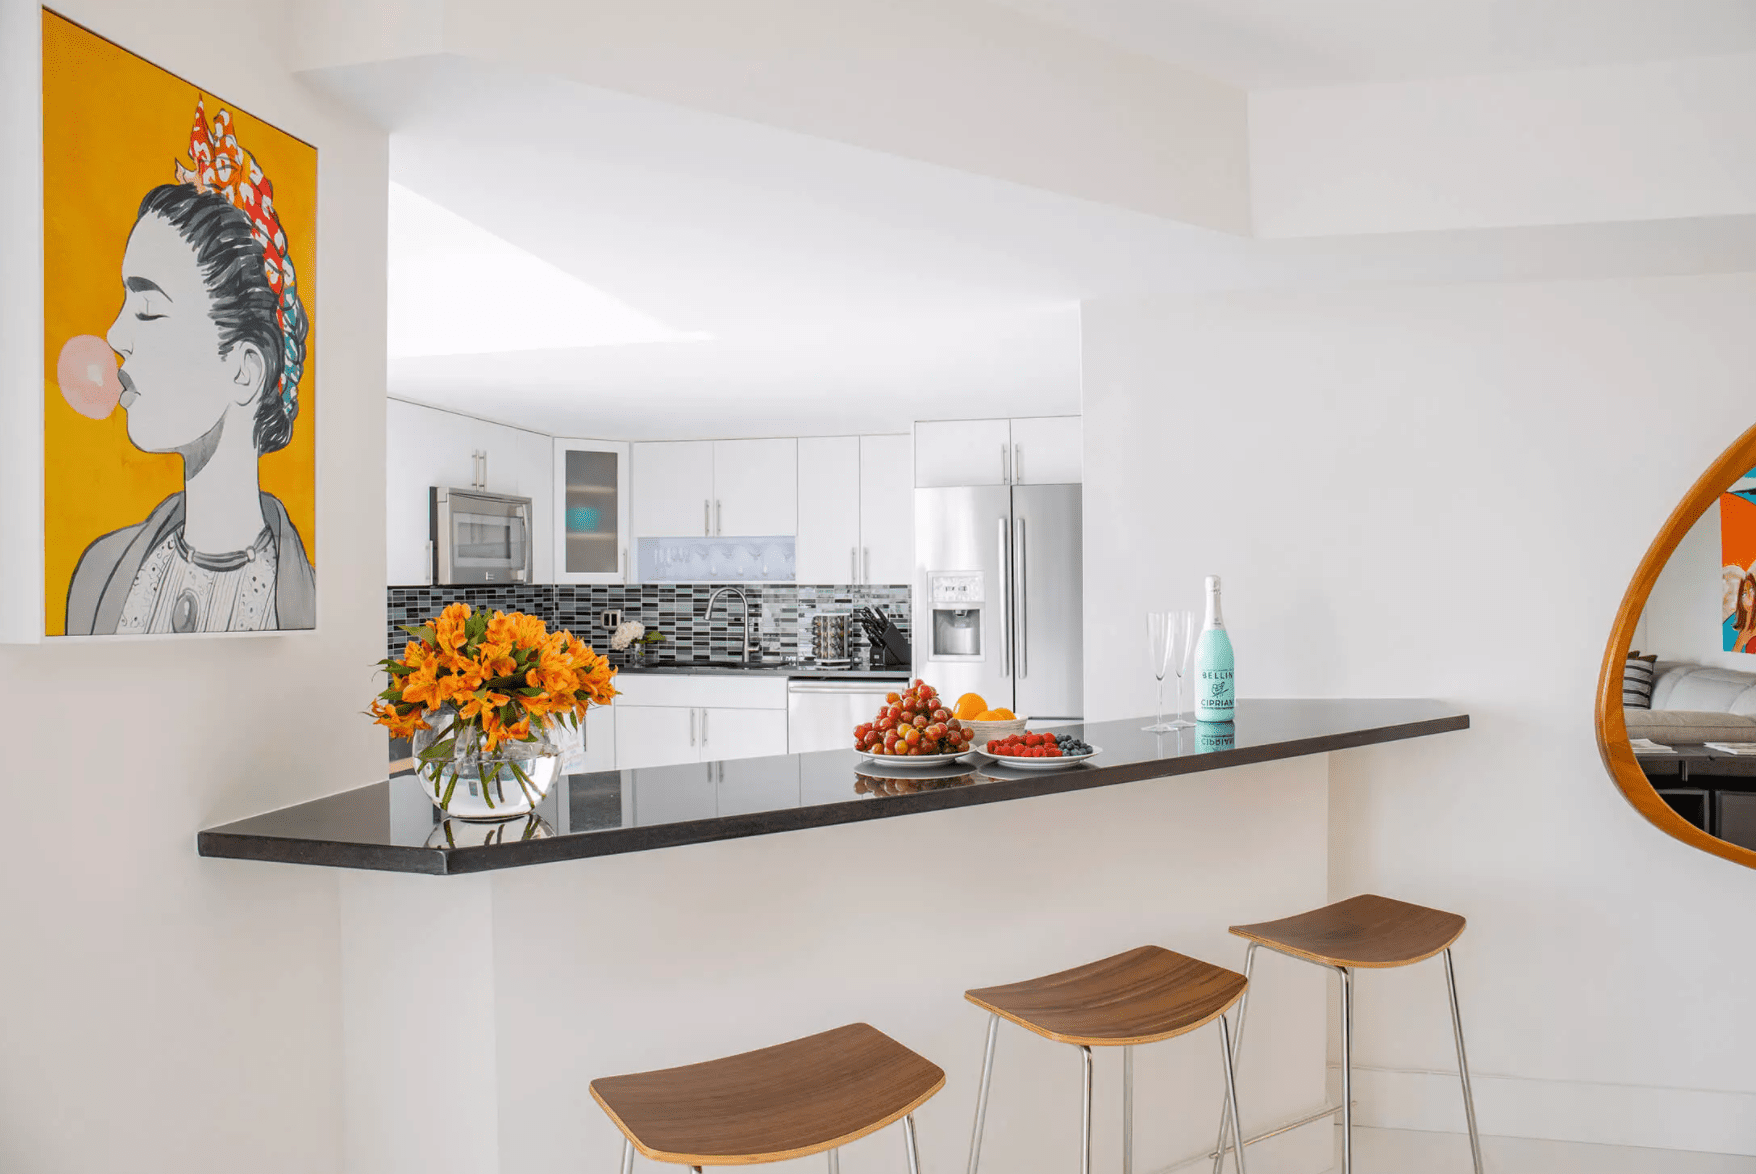 A kitchen with a diagonal built-in bar